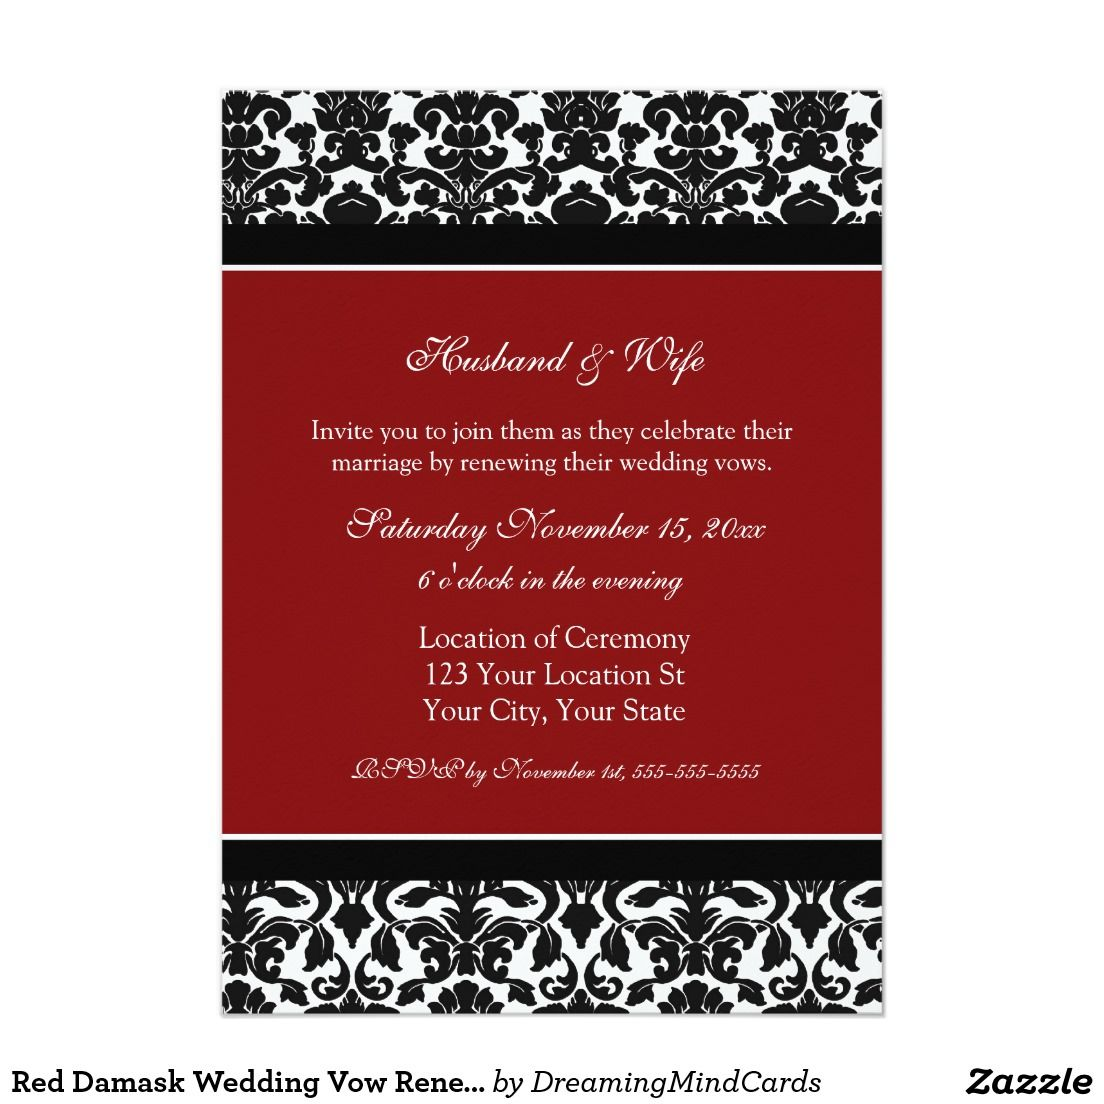 Red Damask Wedding Vow Renewal Invitations | Invitations/Stationary ...